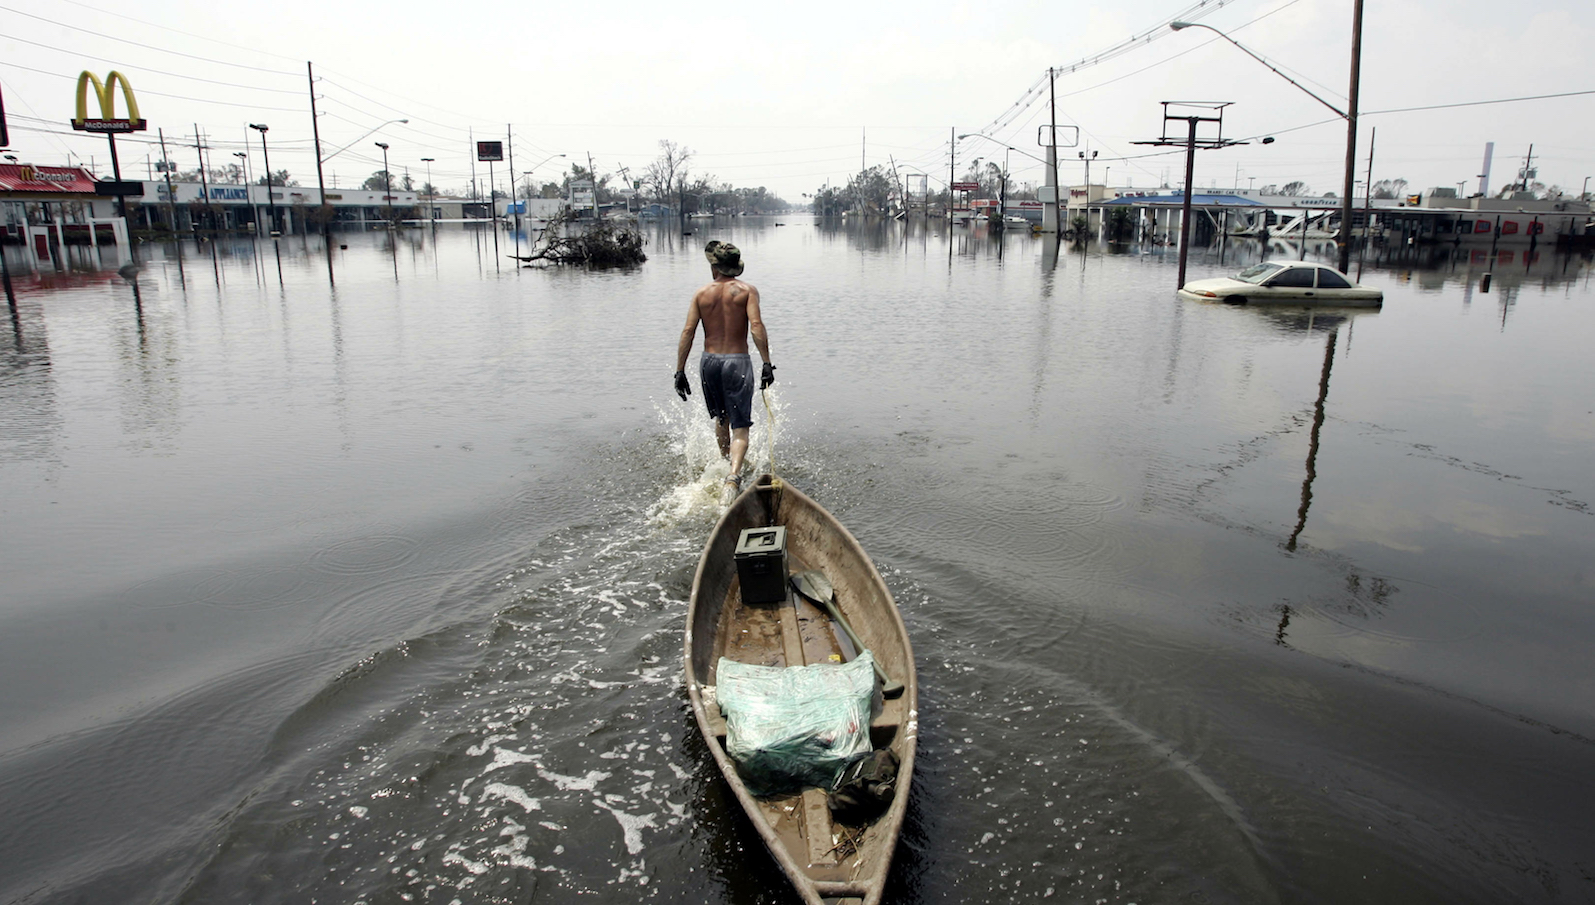 Hurricane Katrina survivor Paul Metzler pulls his boat along Paris St in Chalmette, a community about 7 miles (11 km) east of New Orleans, September 3, 2005. For the first time since Hurricane Katrina struck on August 29, rescuers are scouring the community for survivors. REUTERS/Jason Reed   also see GF2DVFMXNPAA - RTR18QSN